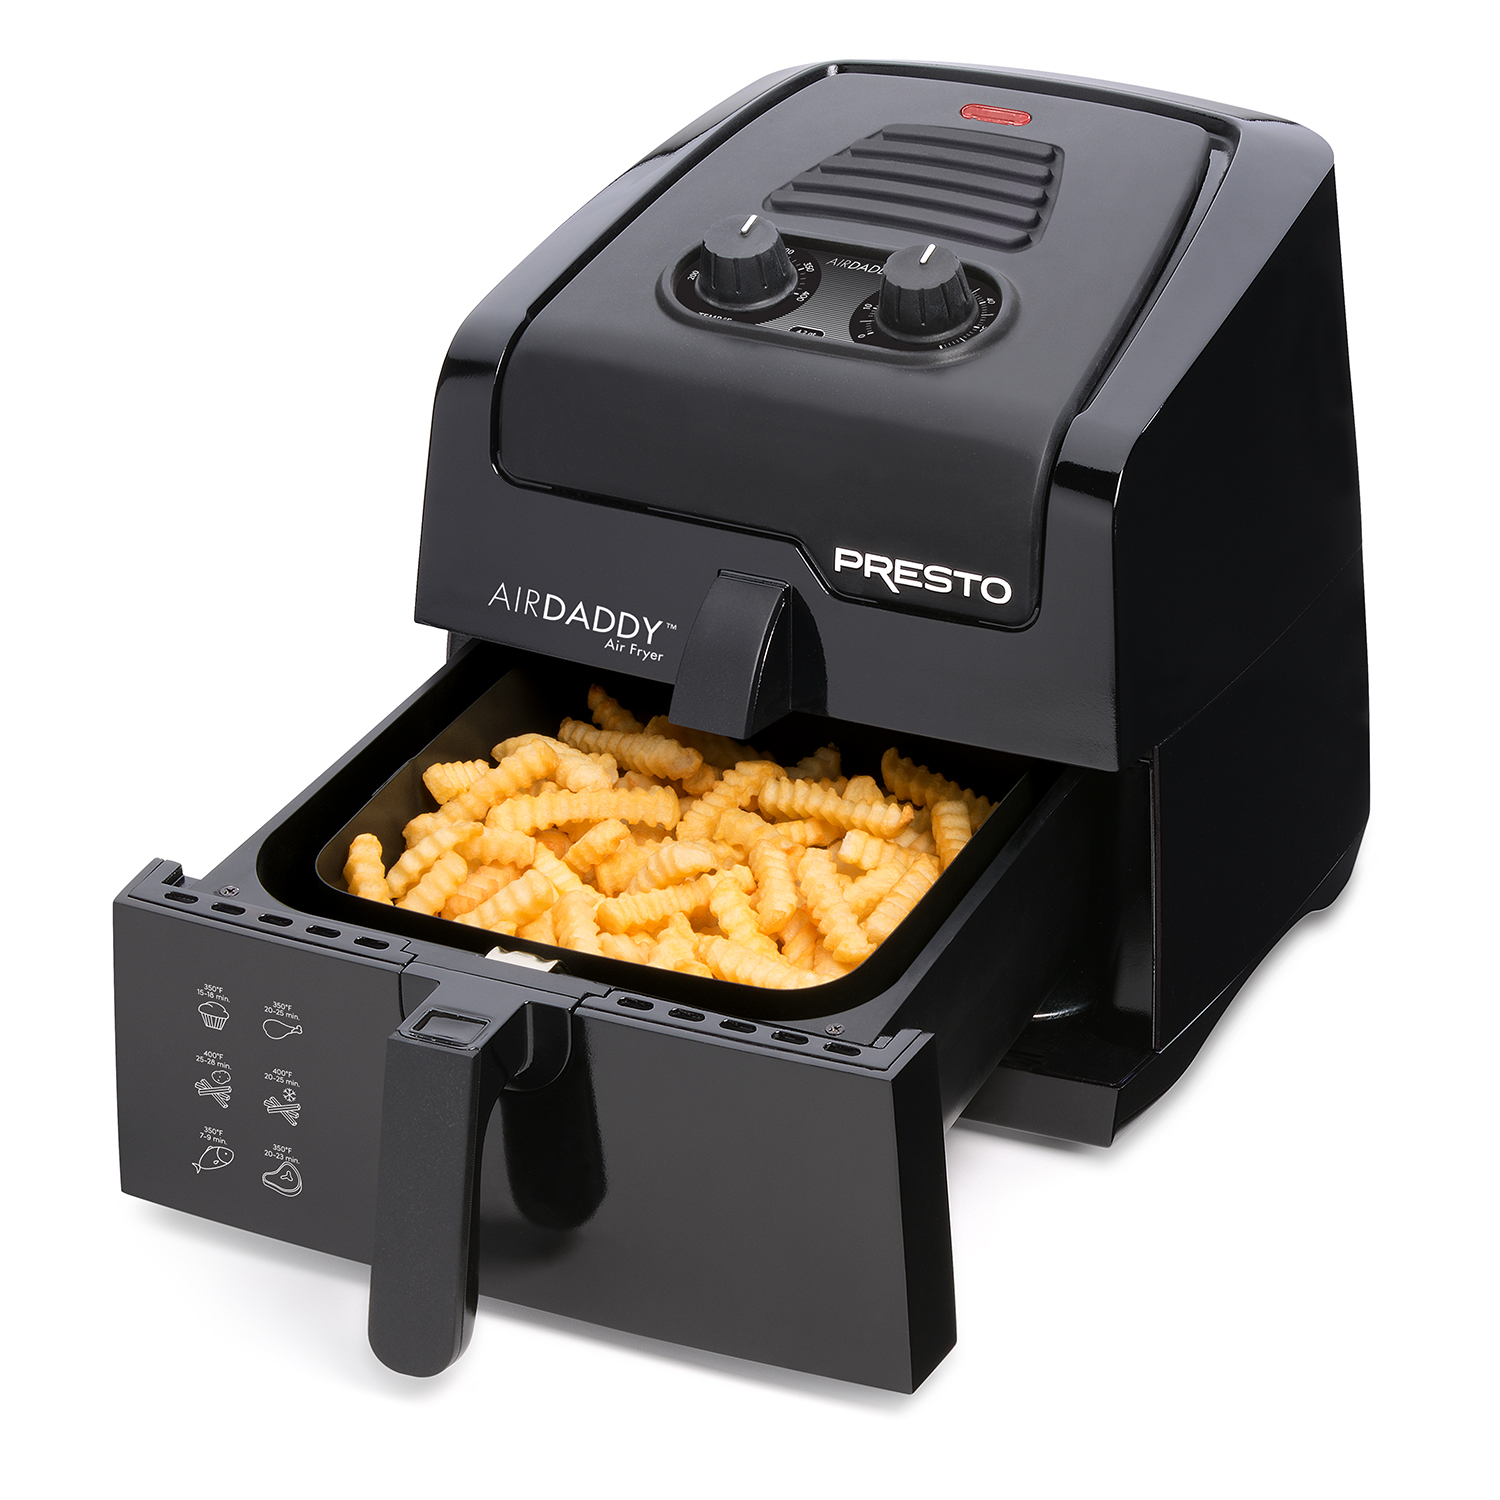 Presto AirDaddy™ 4.2-quart electric air fryer